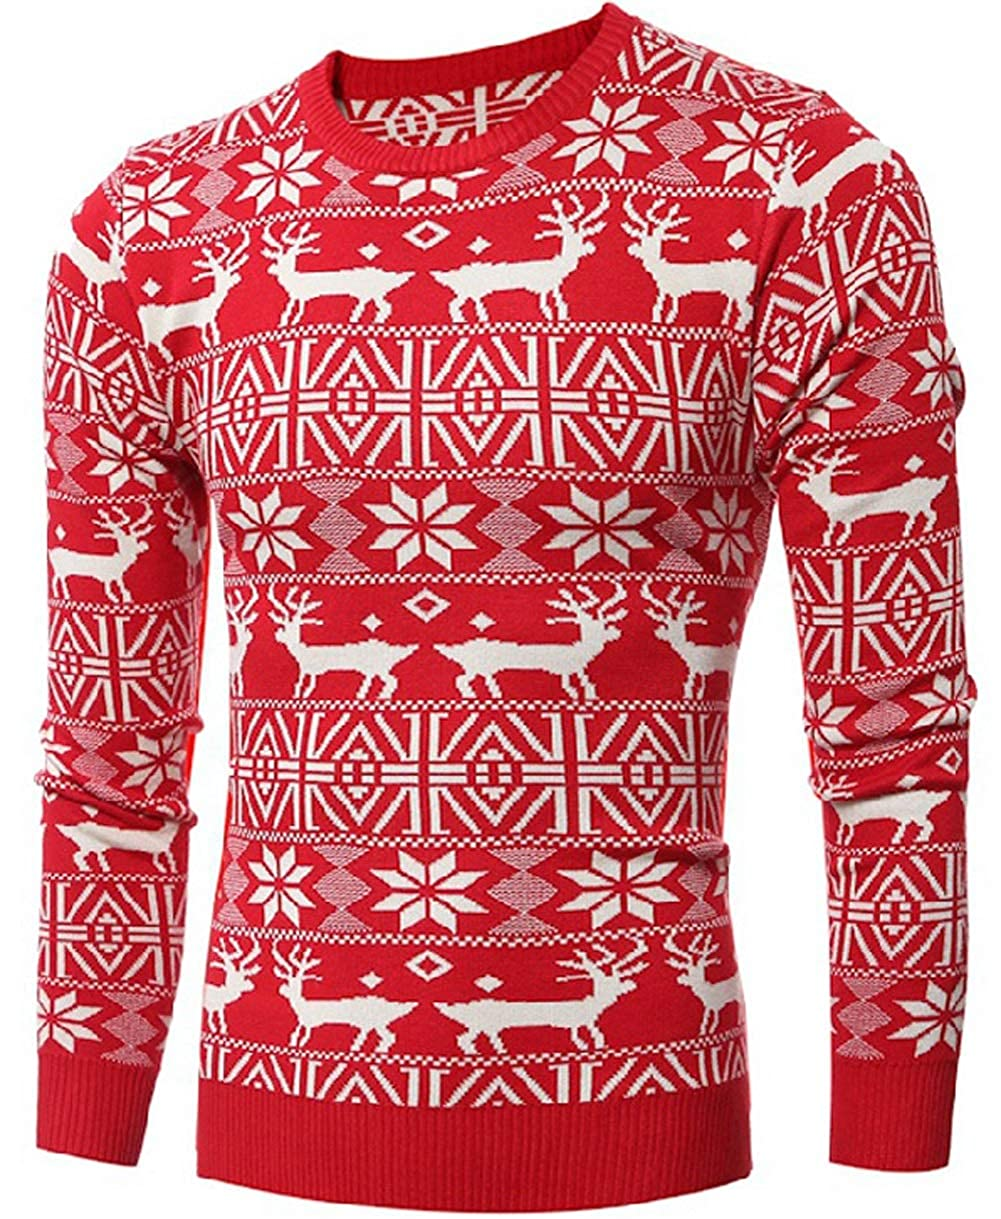 LETSQK Mens Ugly Christmas Sweater Snowflake Reindeer Knitted Long Sleeve Pullover